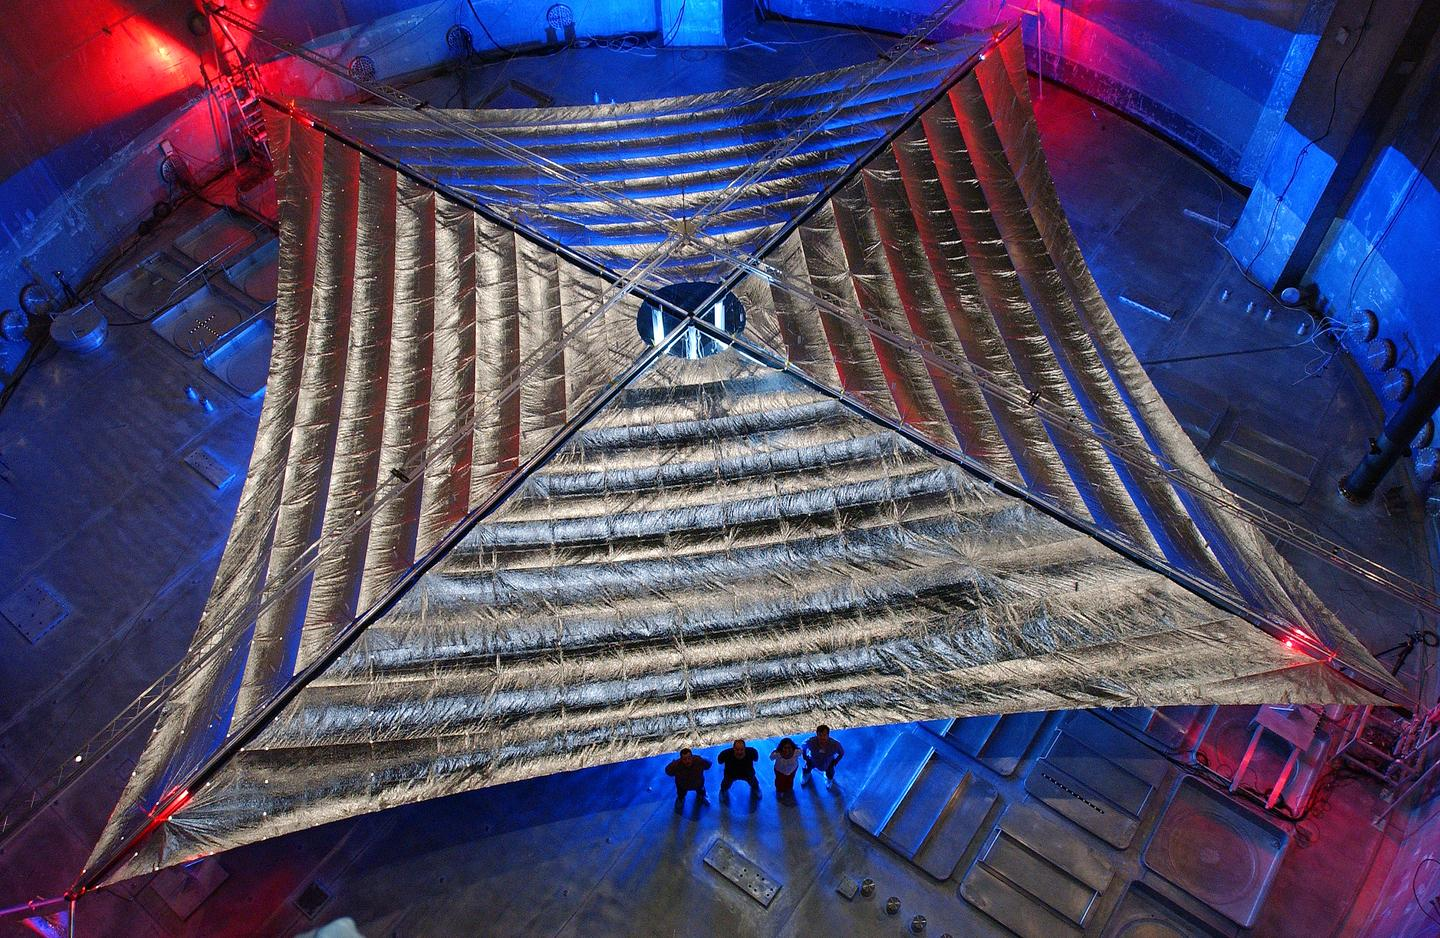 The 20-meter (65.6-ft) solar sail and boom system, developed by L'Garde Inc. of Tustin, California (Image: NASA)